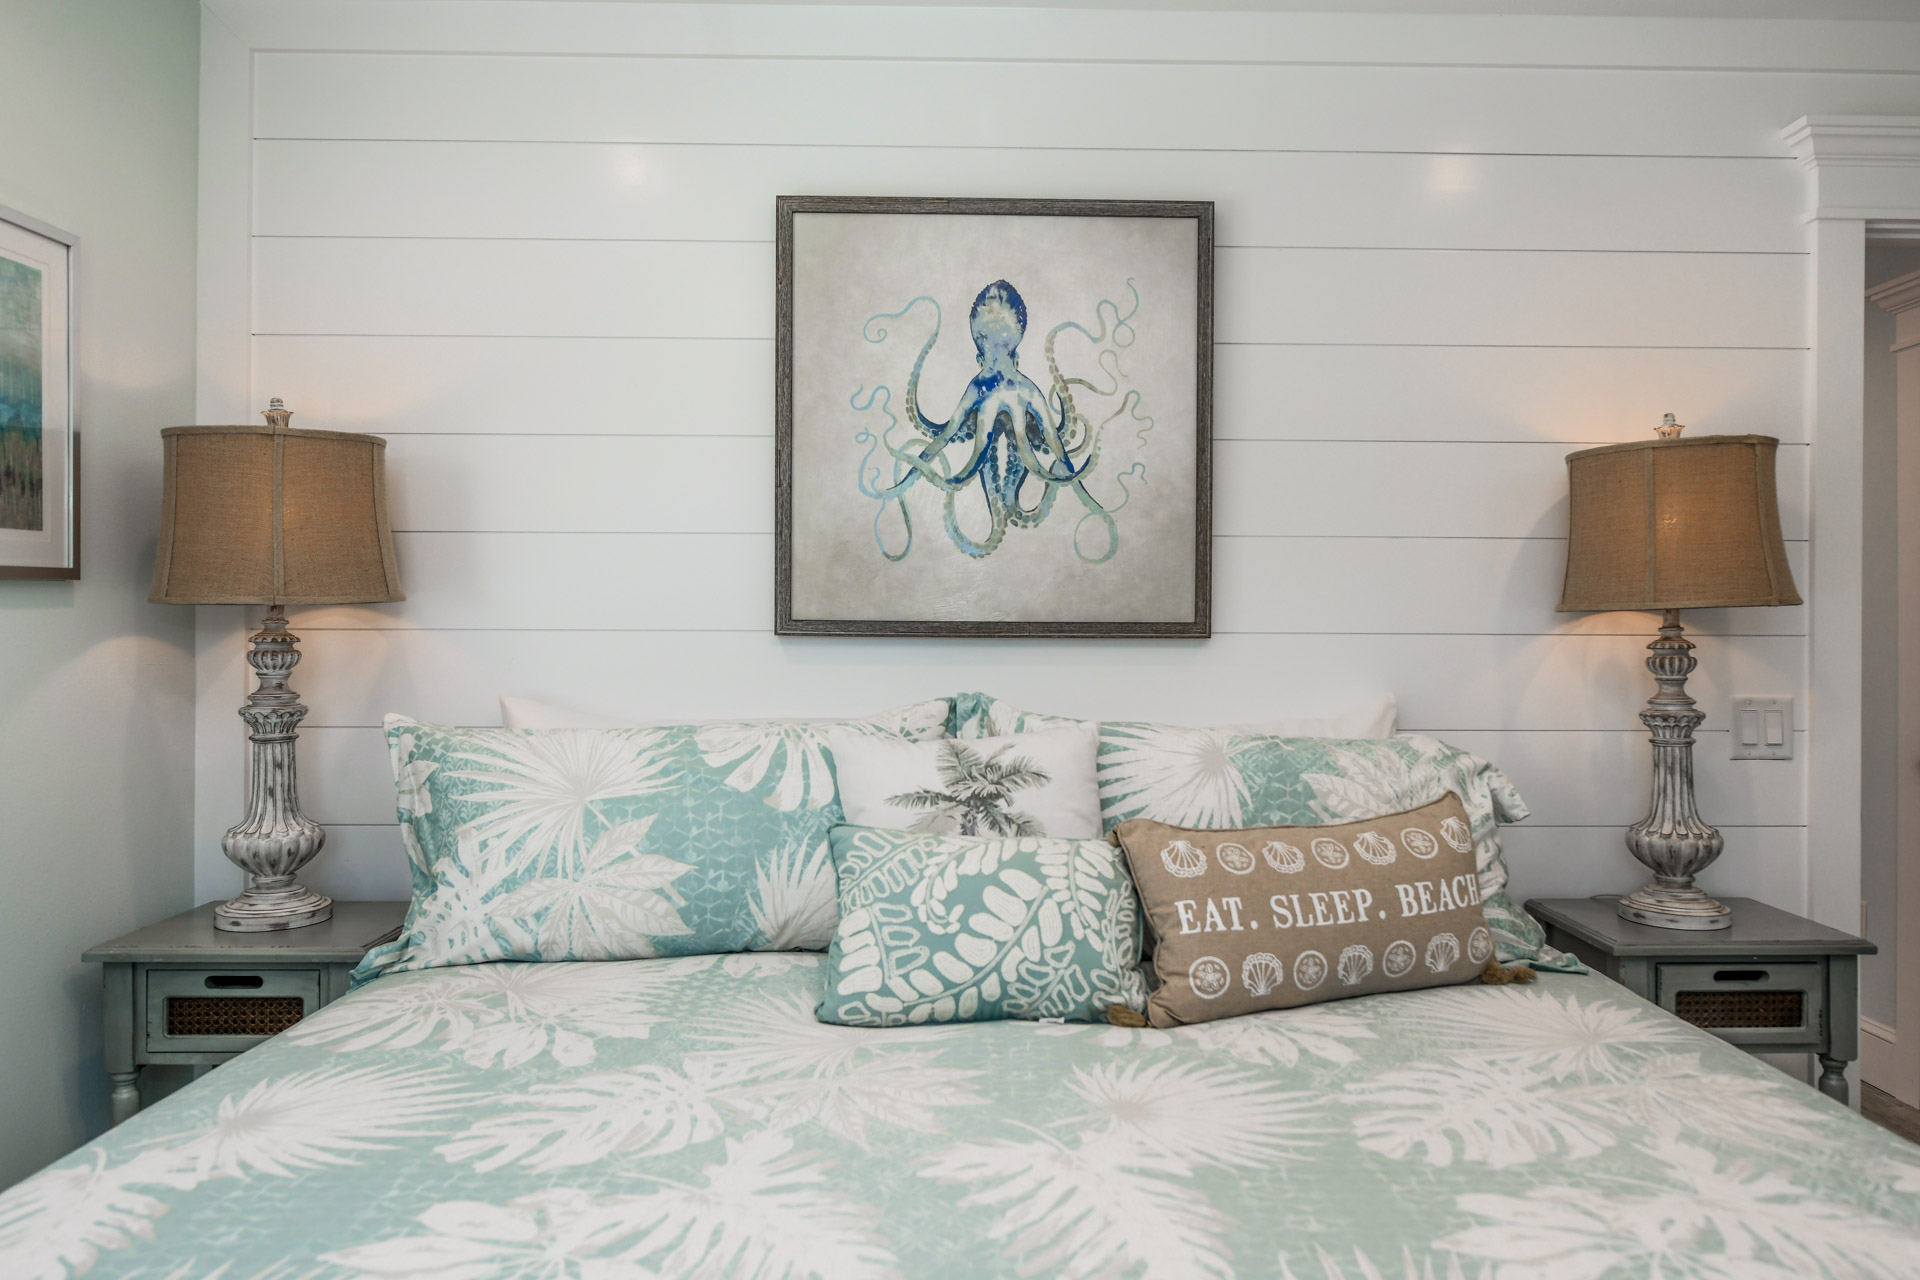 Bedroom 2- Nautical Inspired Decor